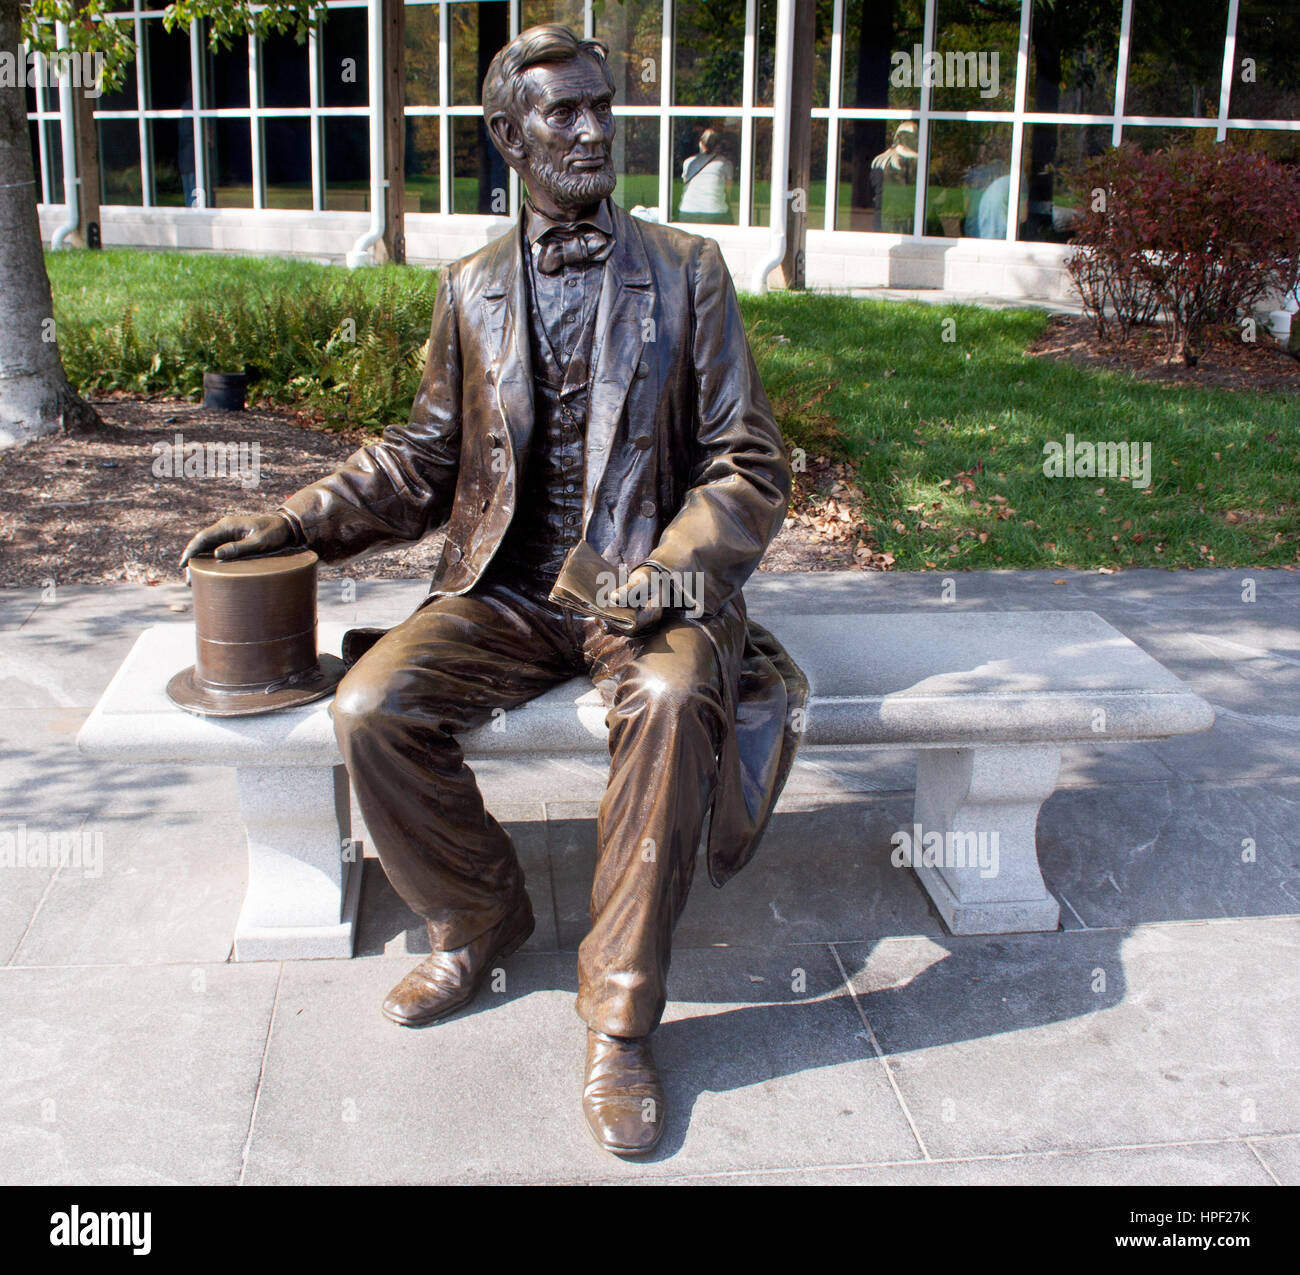 President Abraham Lincoln statue on a bench in Gettysburg Pennsylvania - Stock Image